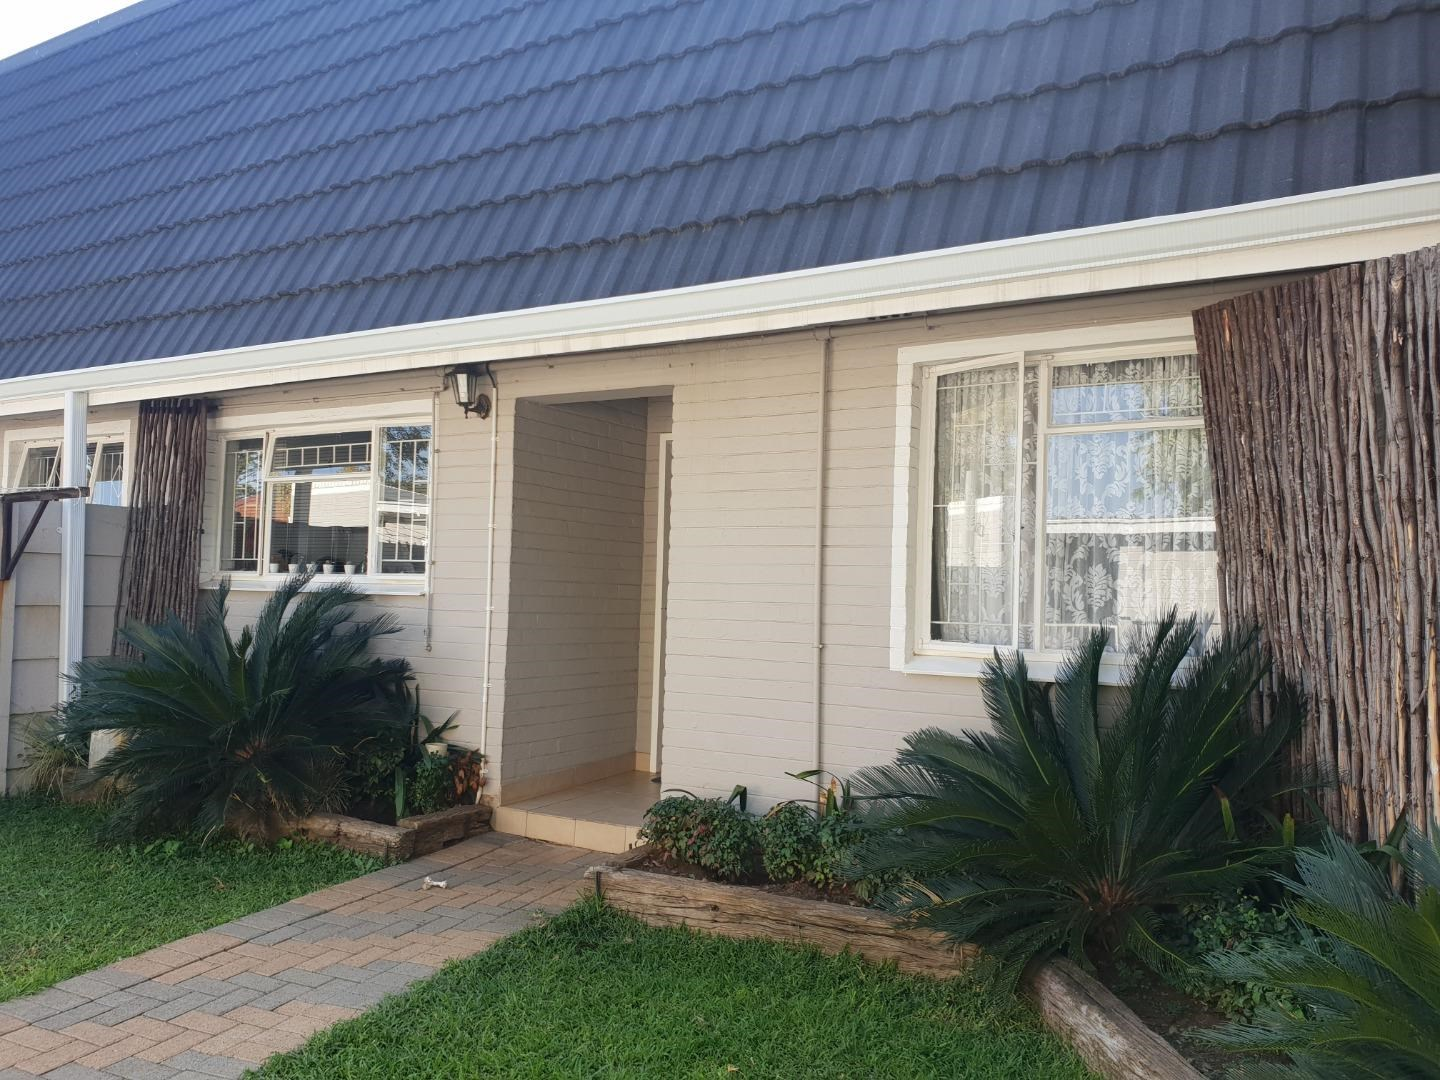 2 Bedroom Townhouse for Sale in Egerton